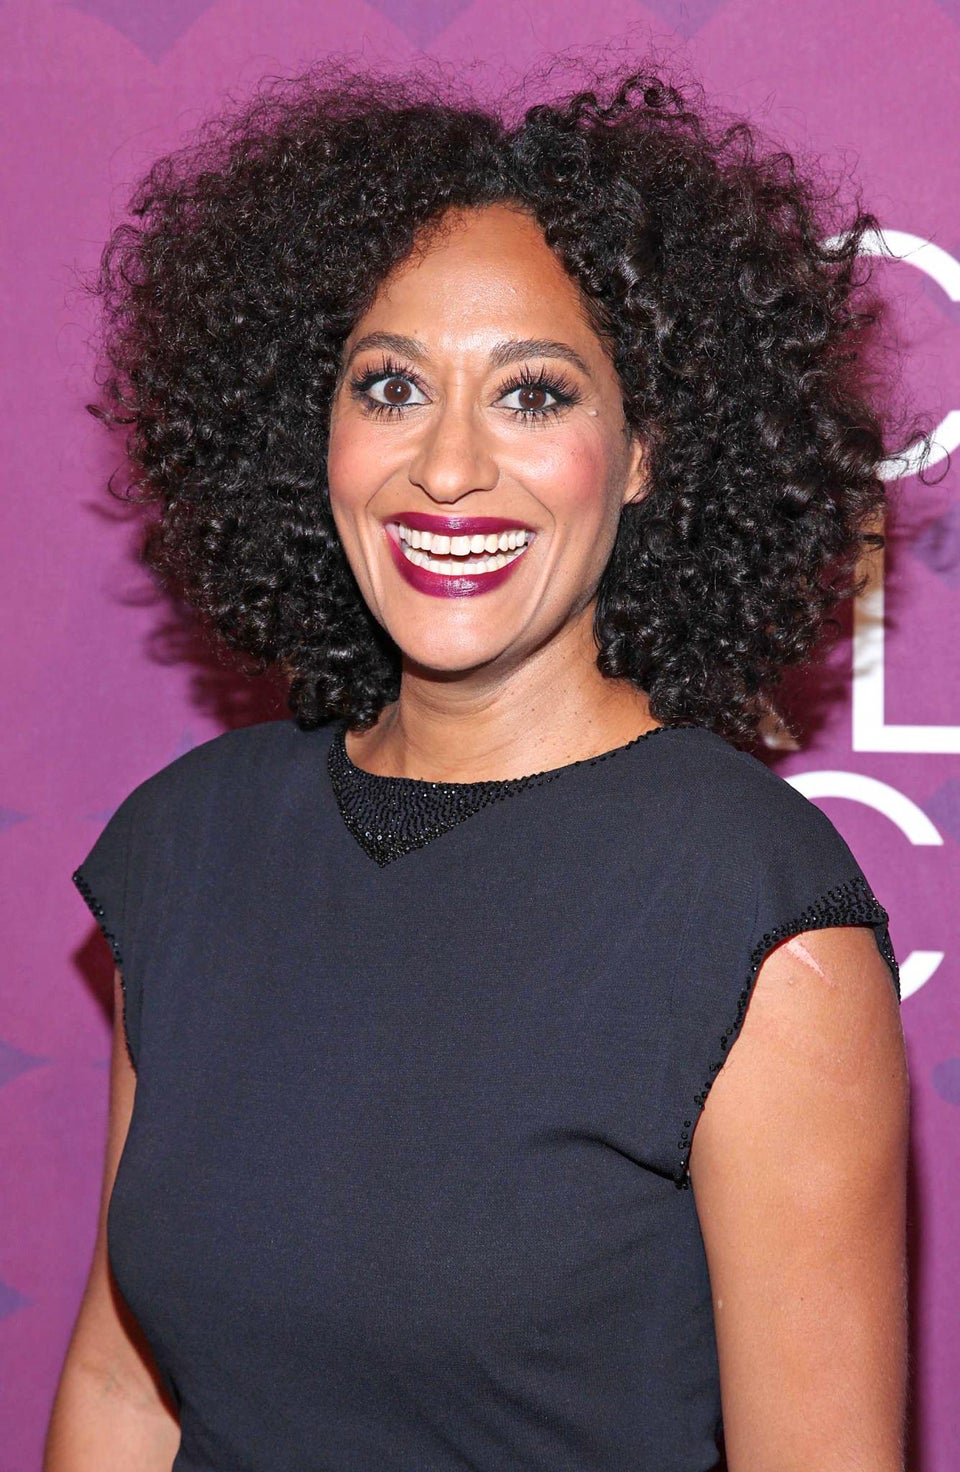 Tracee Ellis Ross Shares Hair Secrets, Weighs In on the Natural Hair Debate